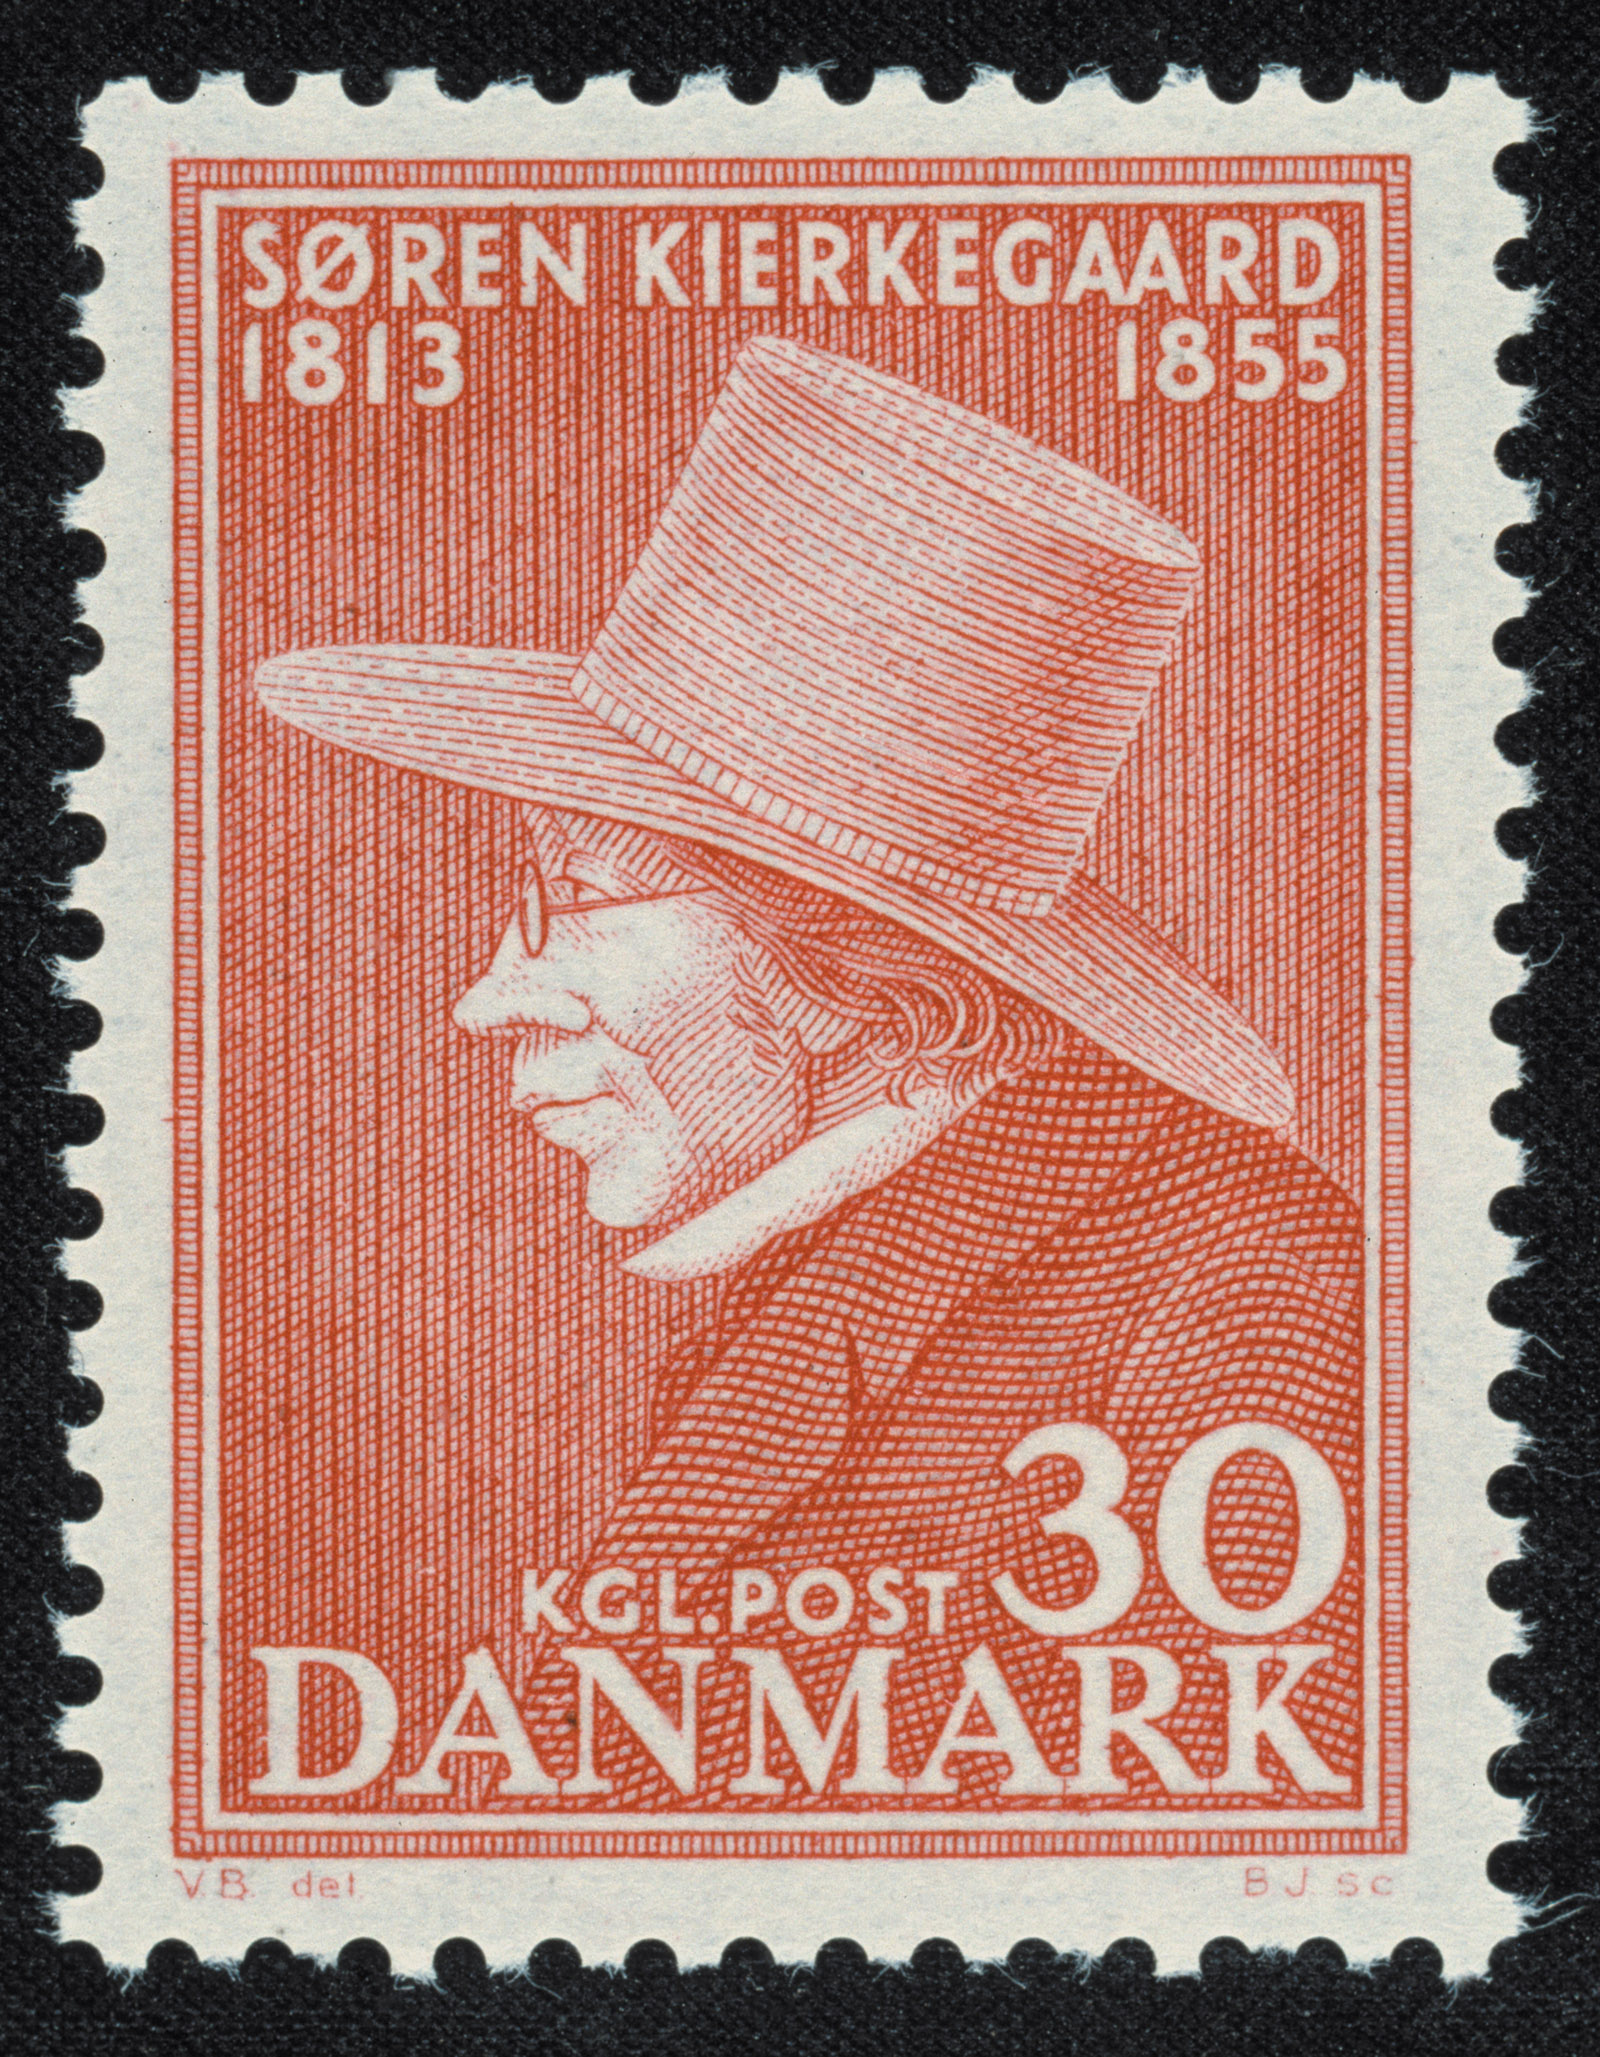 A Danish postage stamp issued in 1955 for the centennial of Søren Kierkegaard's death